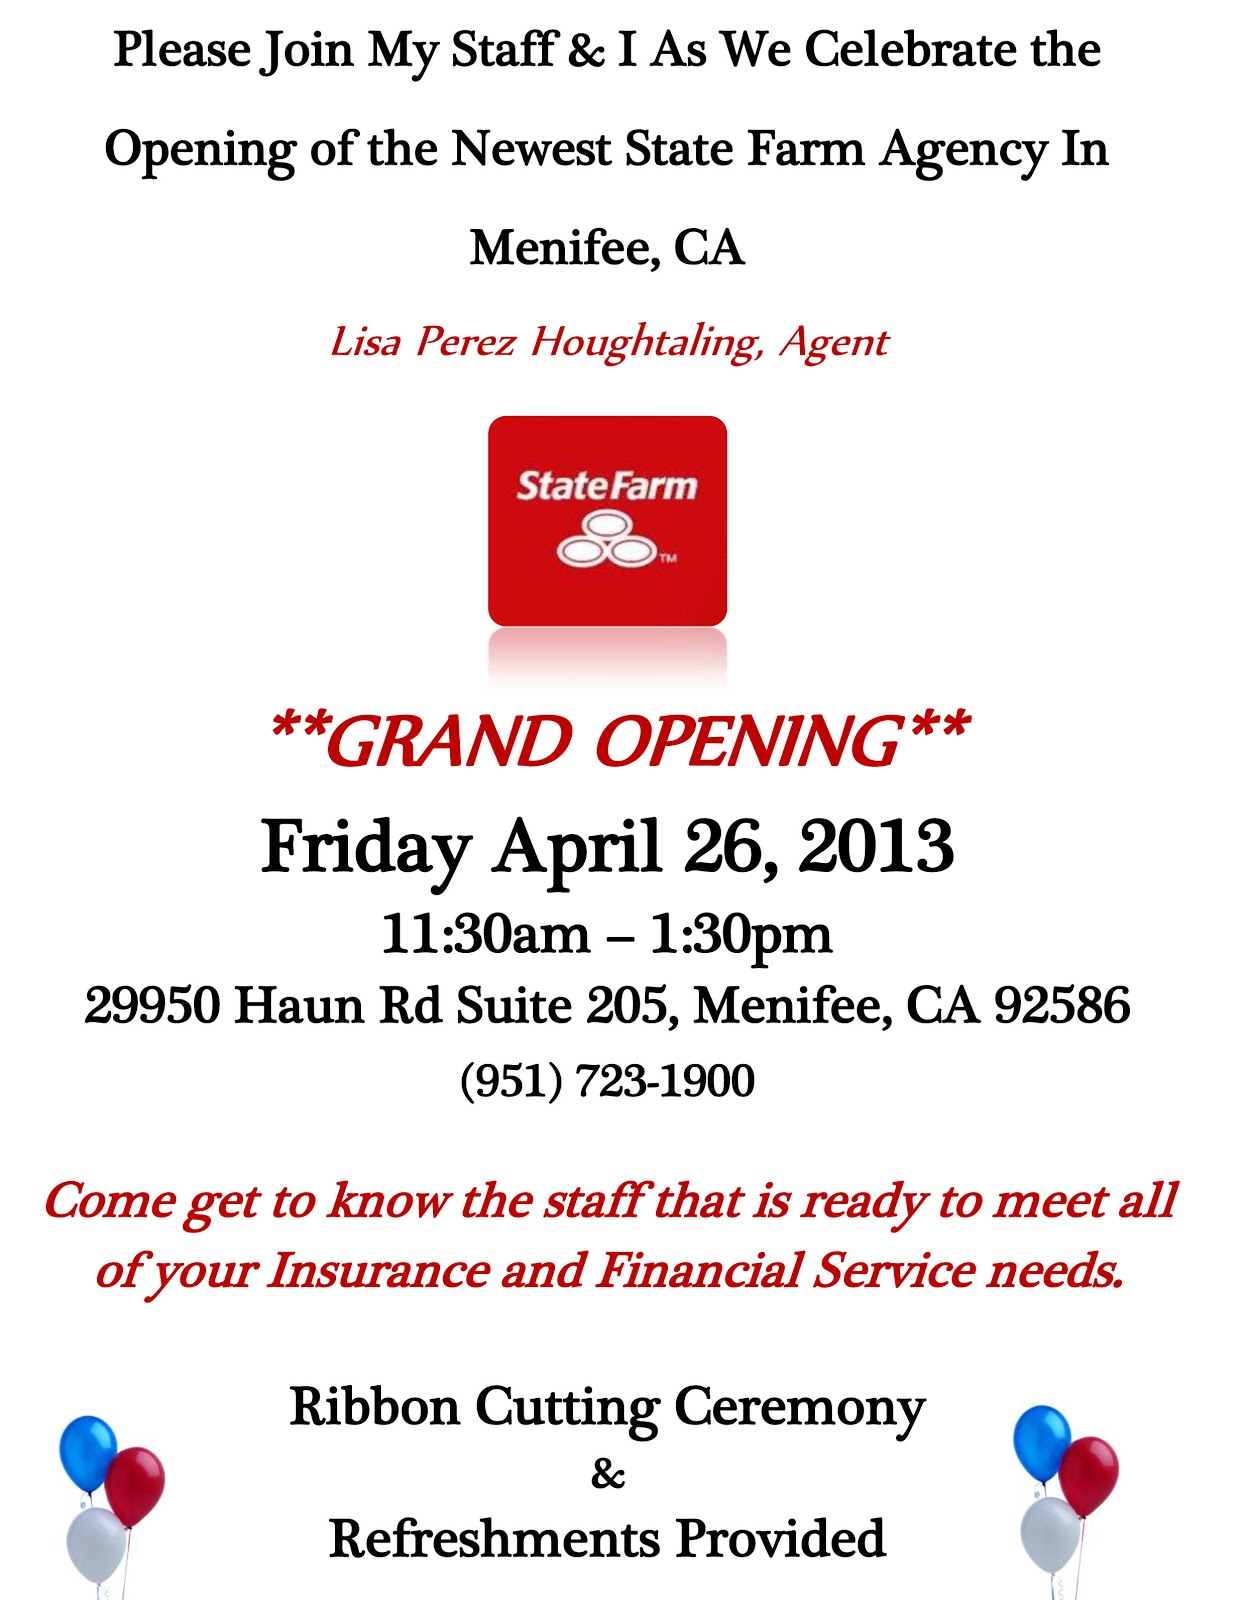 Menifees newest state farm agency grand opening april 26 menifees newest state farm agency grand opening april 26 menifee 247 stopboris Choice Image